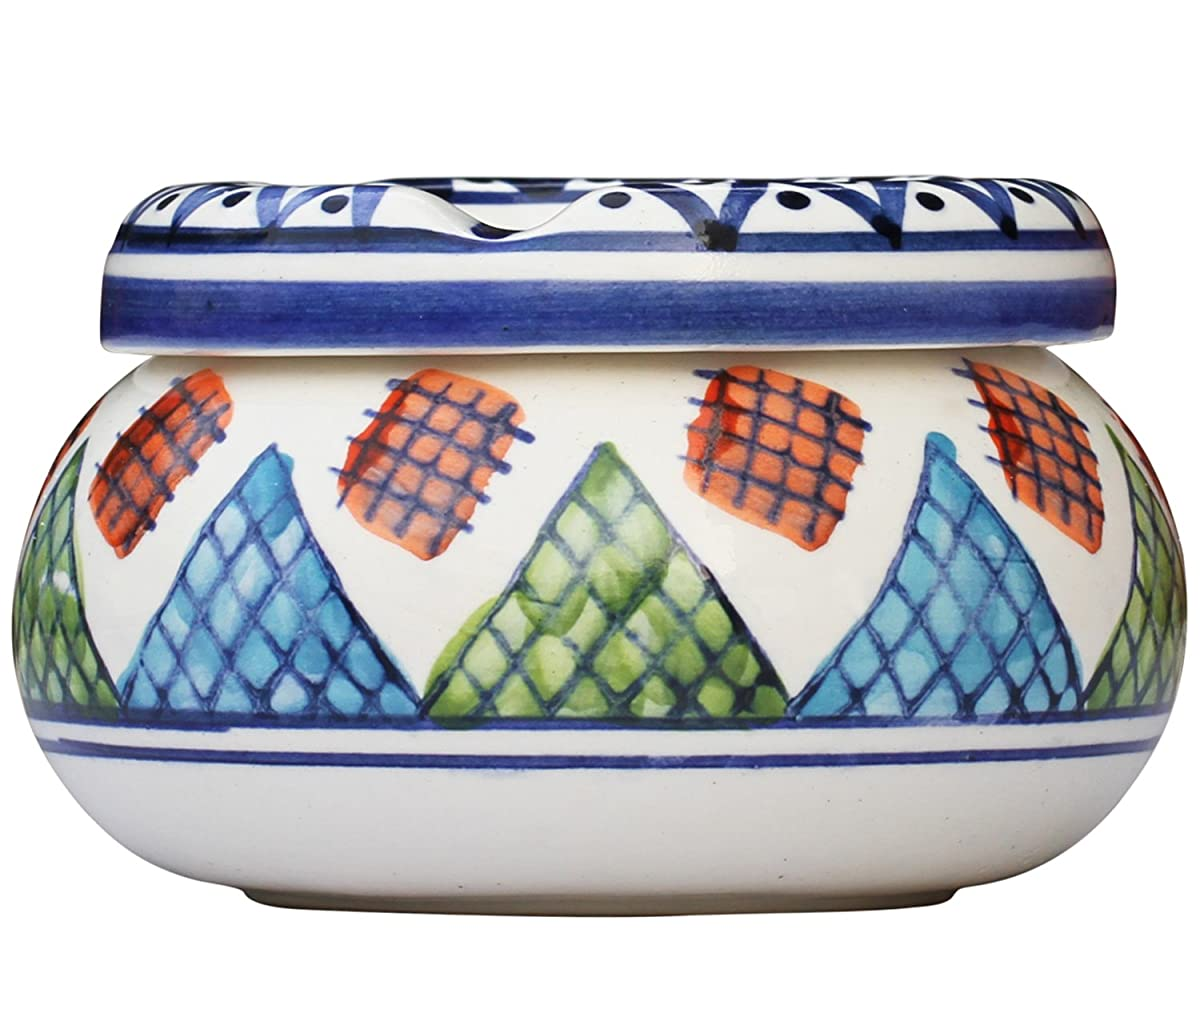 SouvNear Ashtray - Moroccan Round Ceramic Ashtray with Lid for Outdoors and Indoors with 3 Cigarette Holder Slots